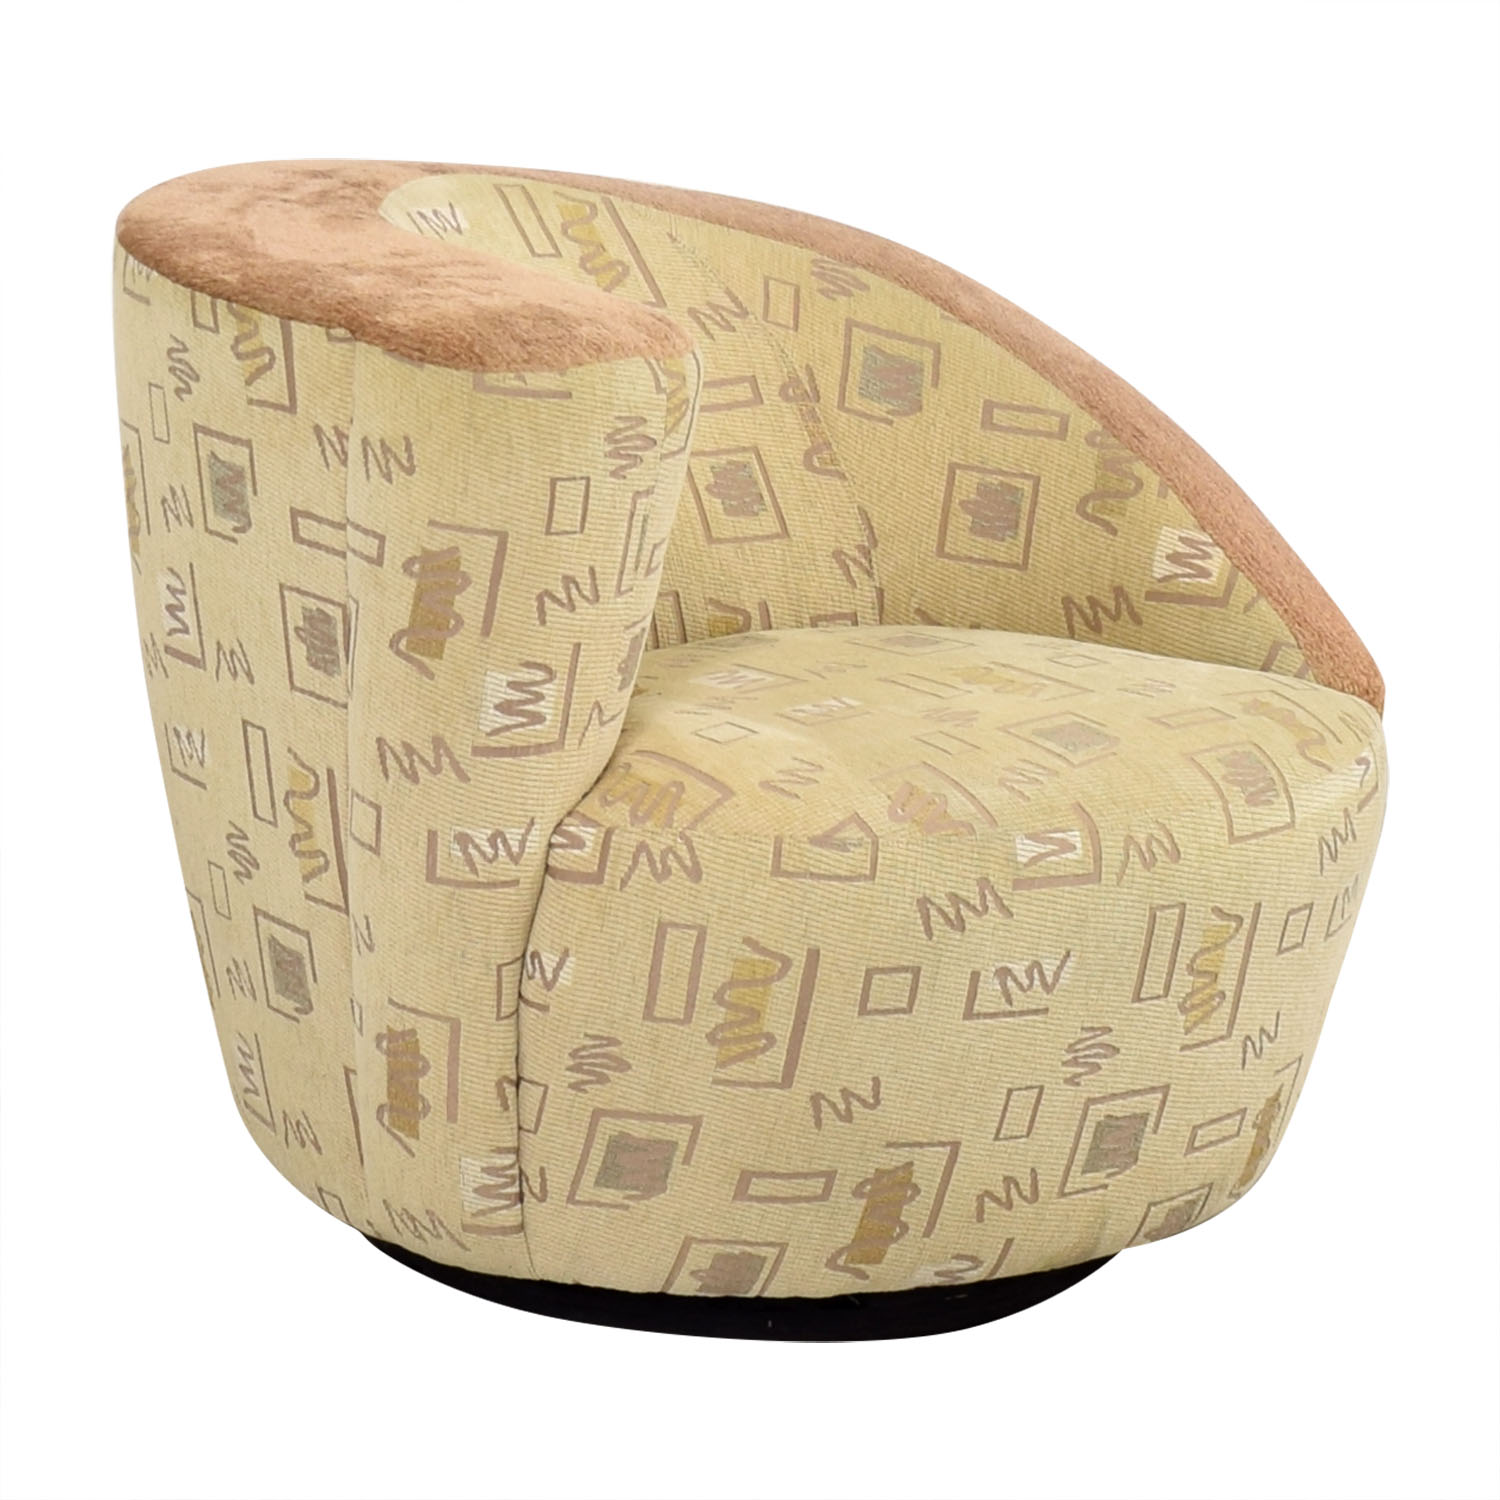 Directional Furniture Directional Furniture Swivel Lounge Chair for sale